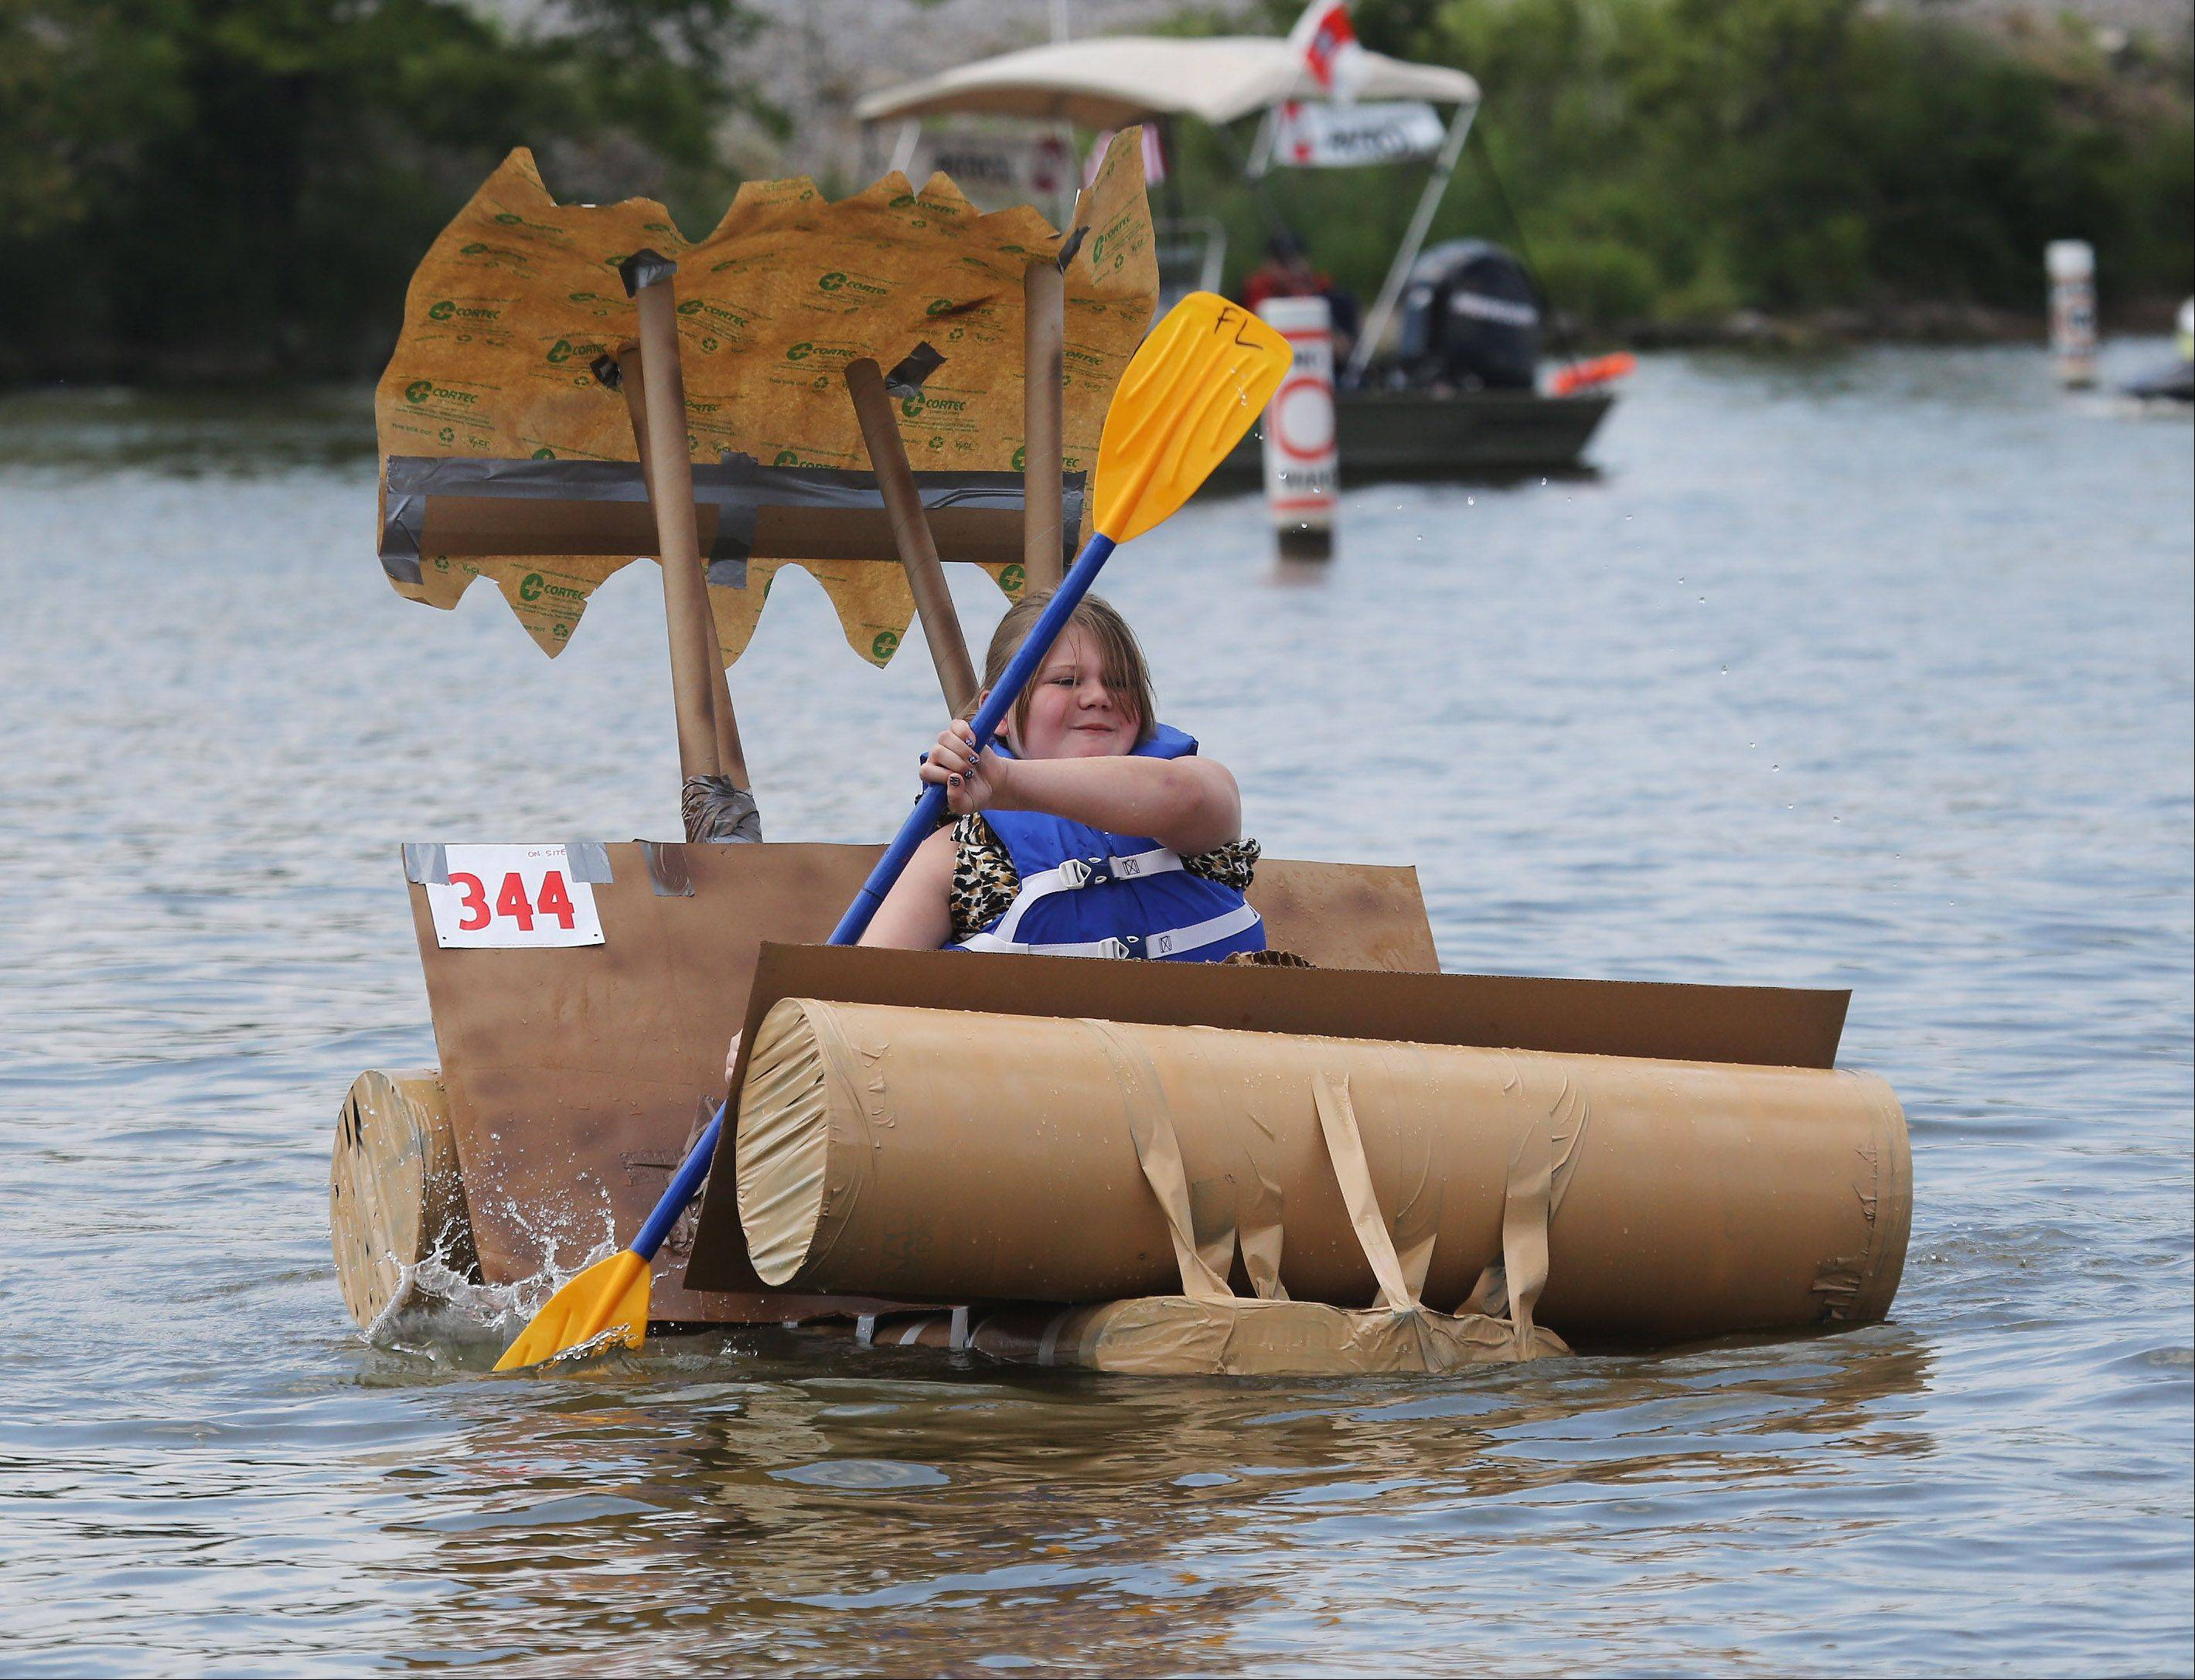 Haley Masterton paddles her cardboard boat, that was made to look like the car from the show The Flintstone's during the 16th Annual Fox Lake Cardboard Cup Regatta Sunday at Lakefront Park.